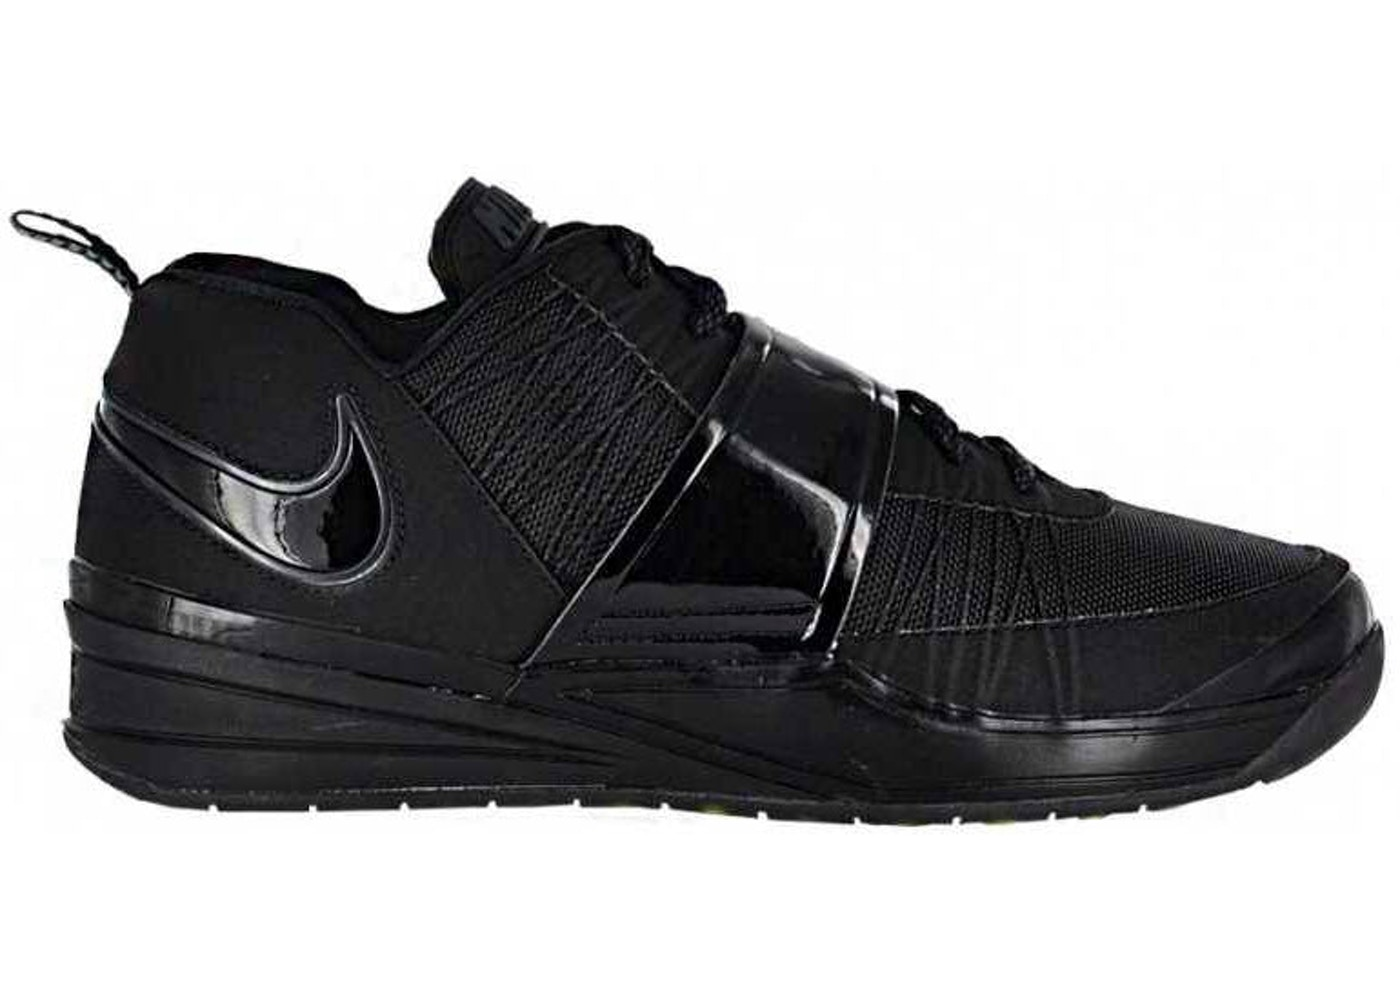 9dd65755bef4b Nike Other Football Shoes - Average Sale Price